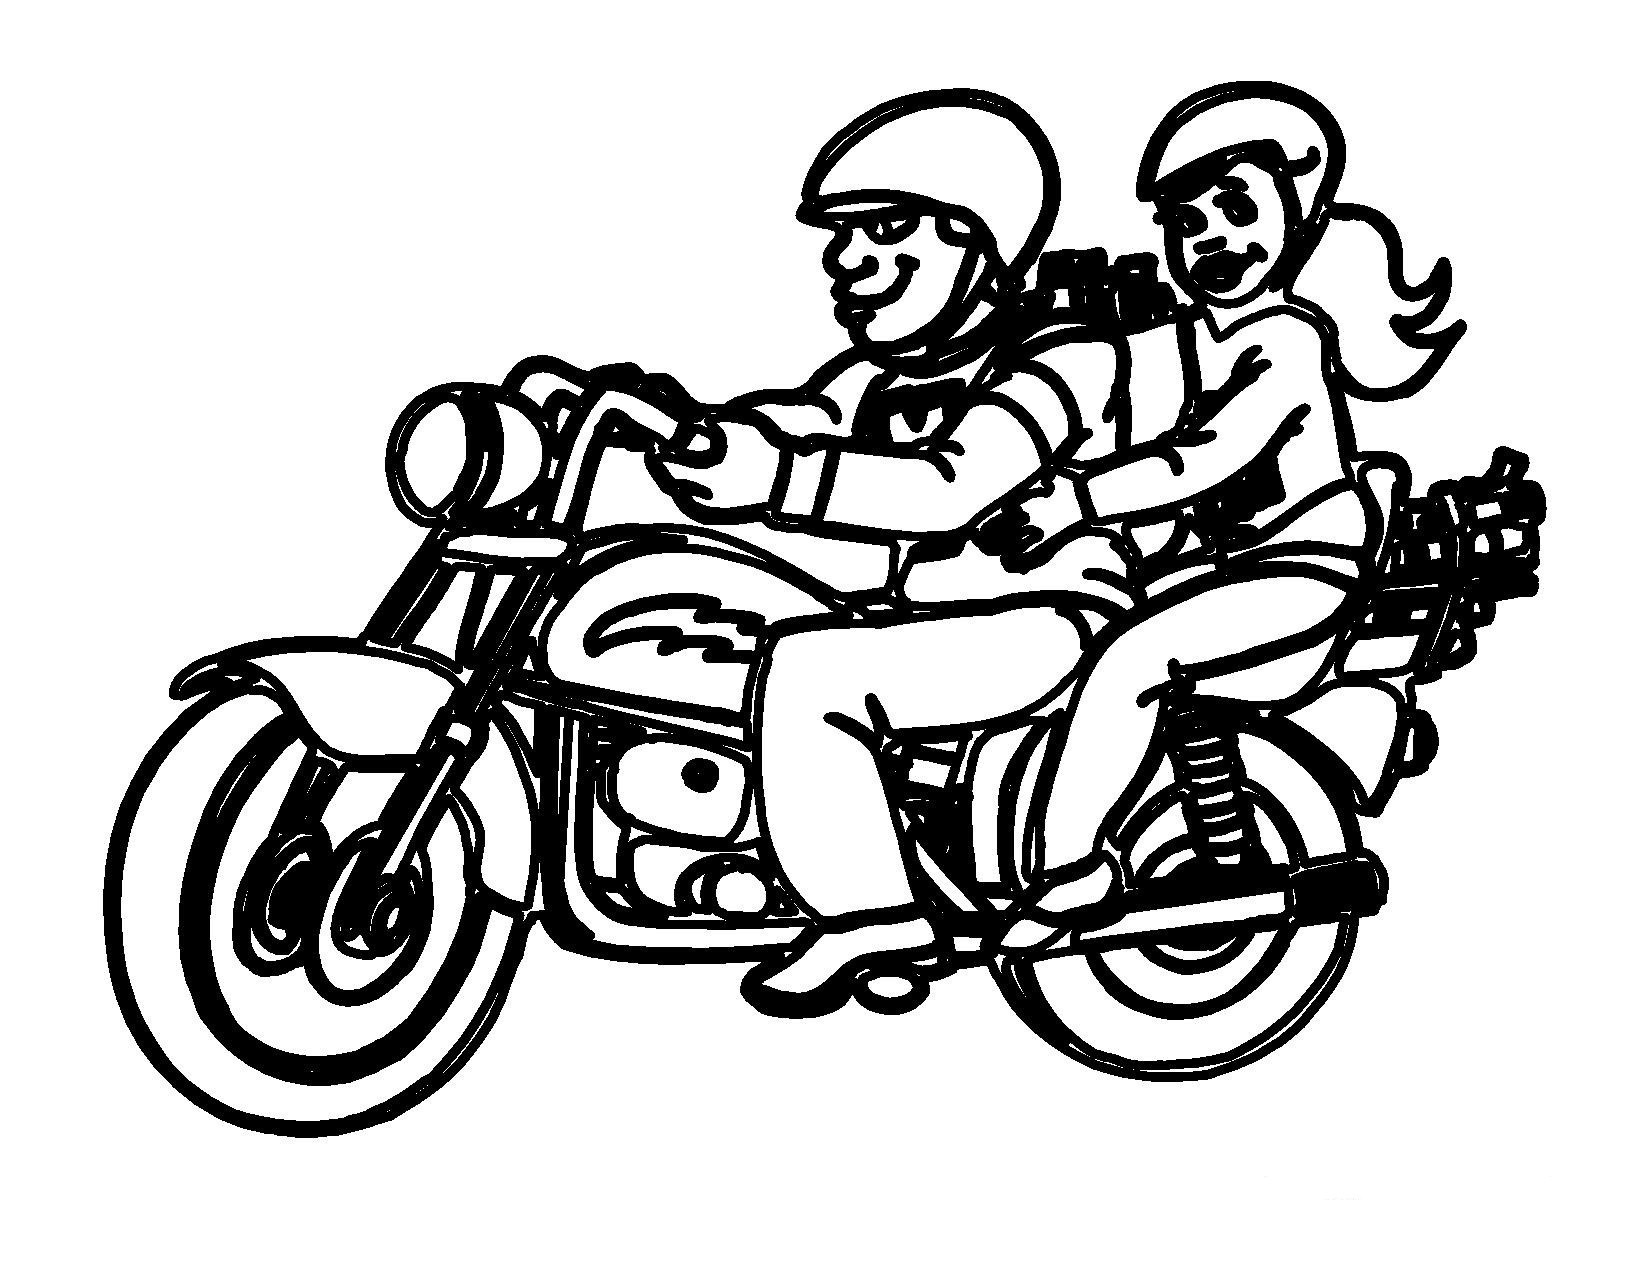 1650x1275 Motorcycle Coloring Pages Elegant Free Printable Motorcycle